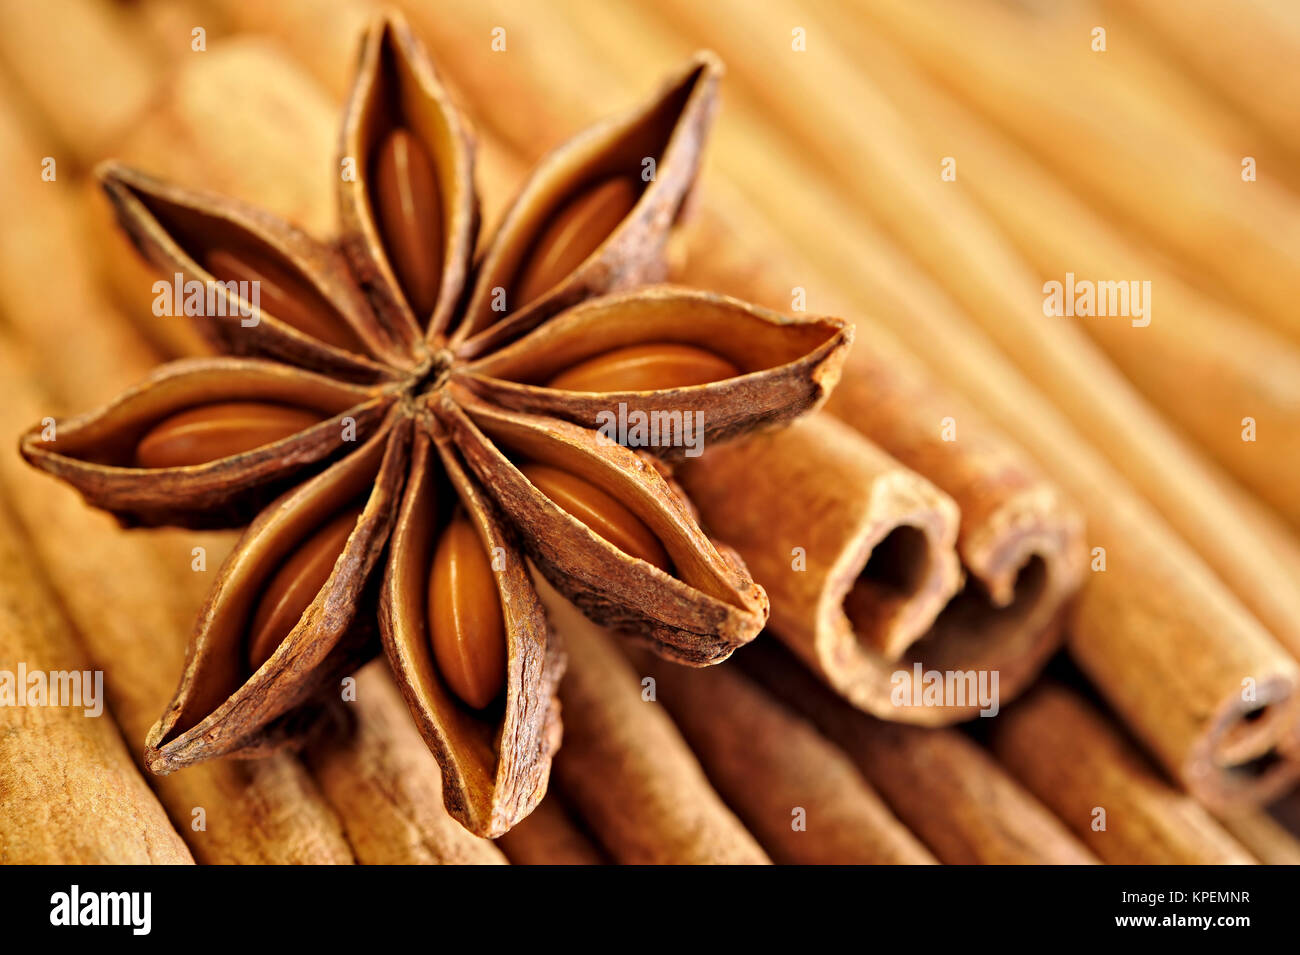 Anise star on cinnamon sticks - Stock Image